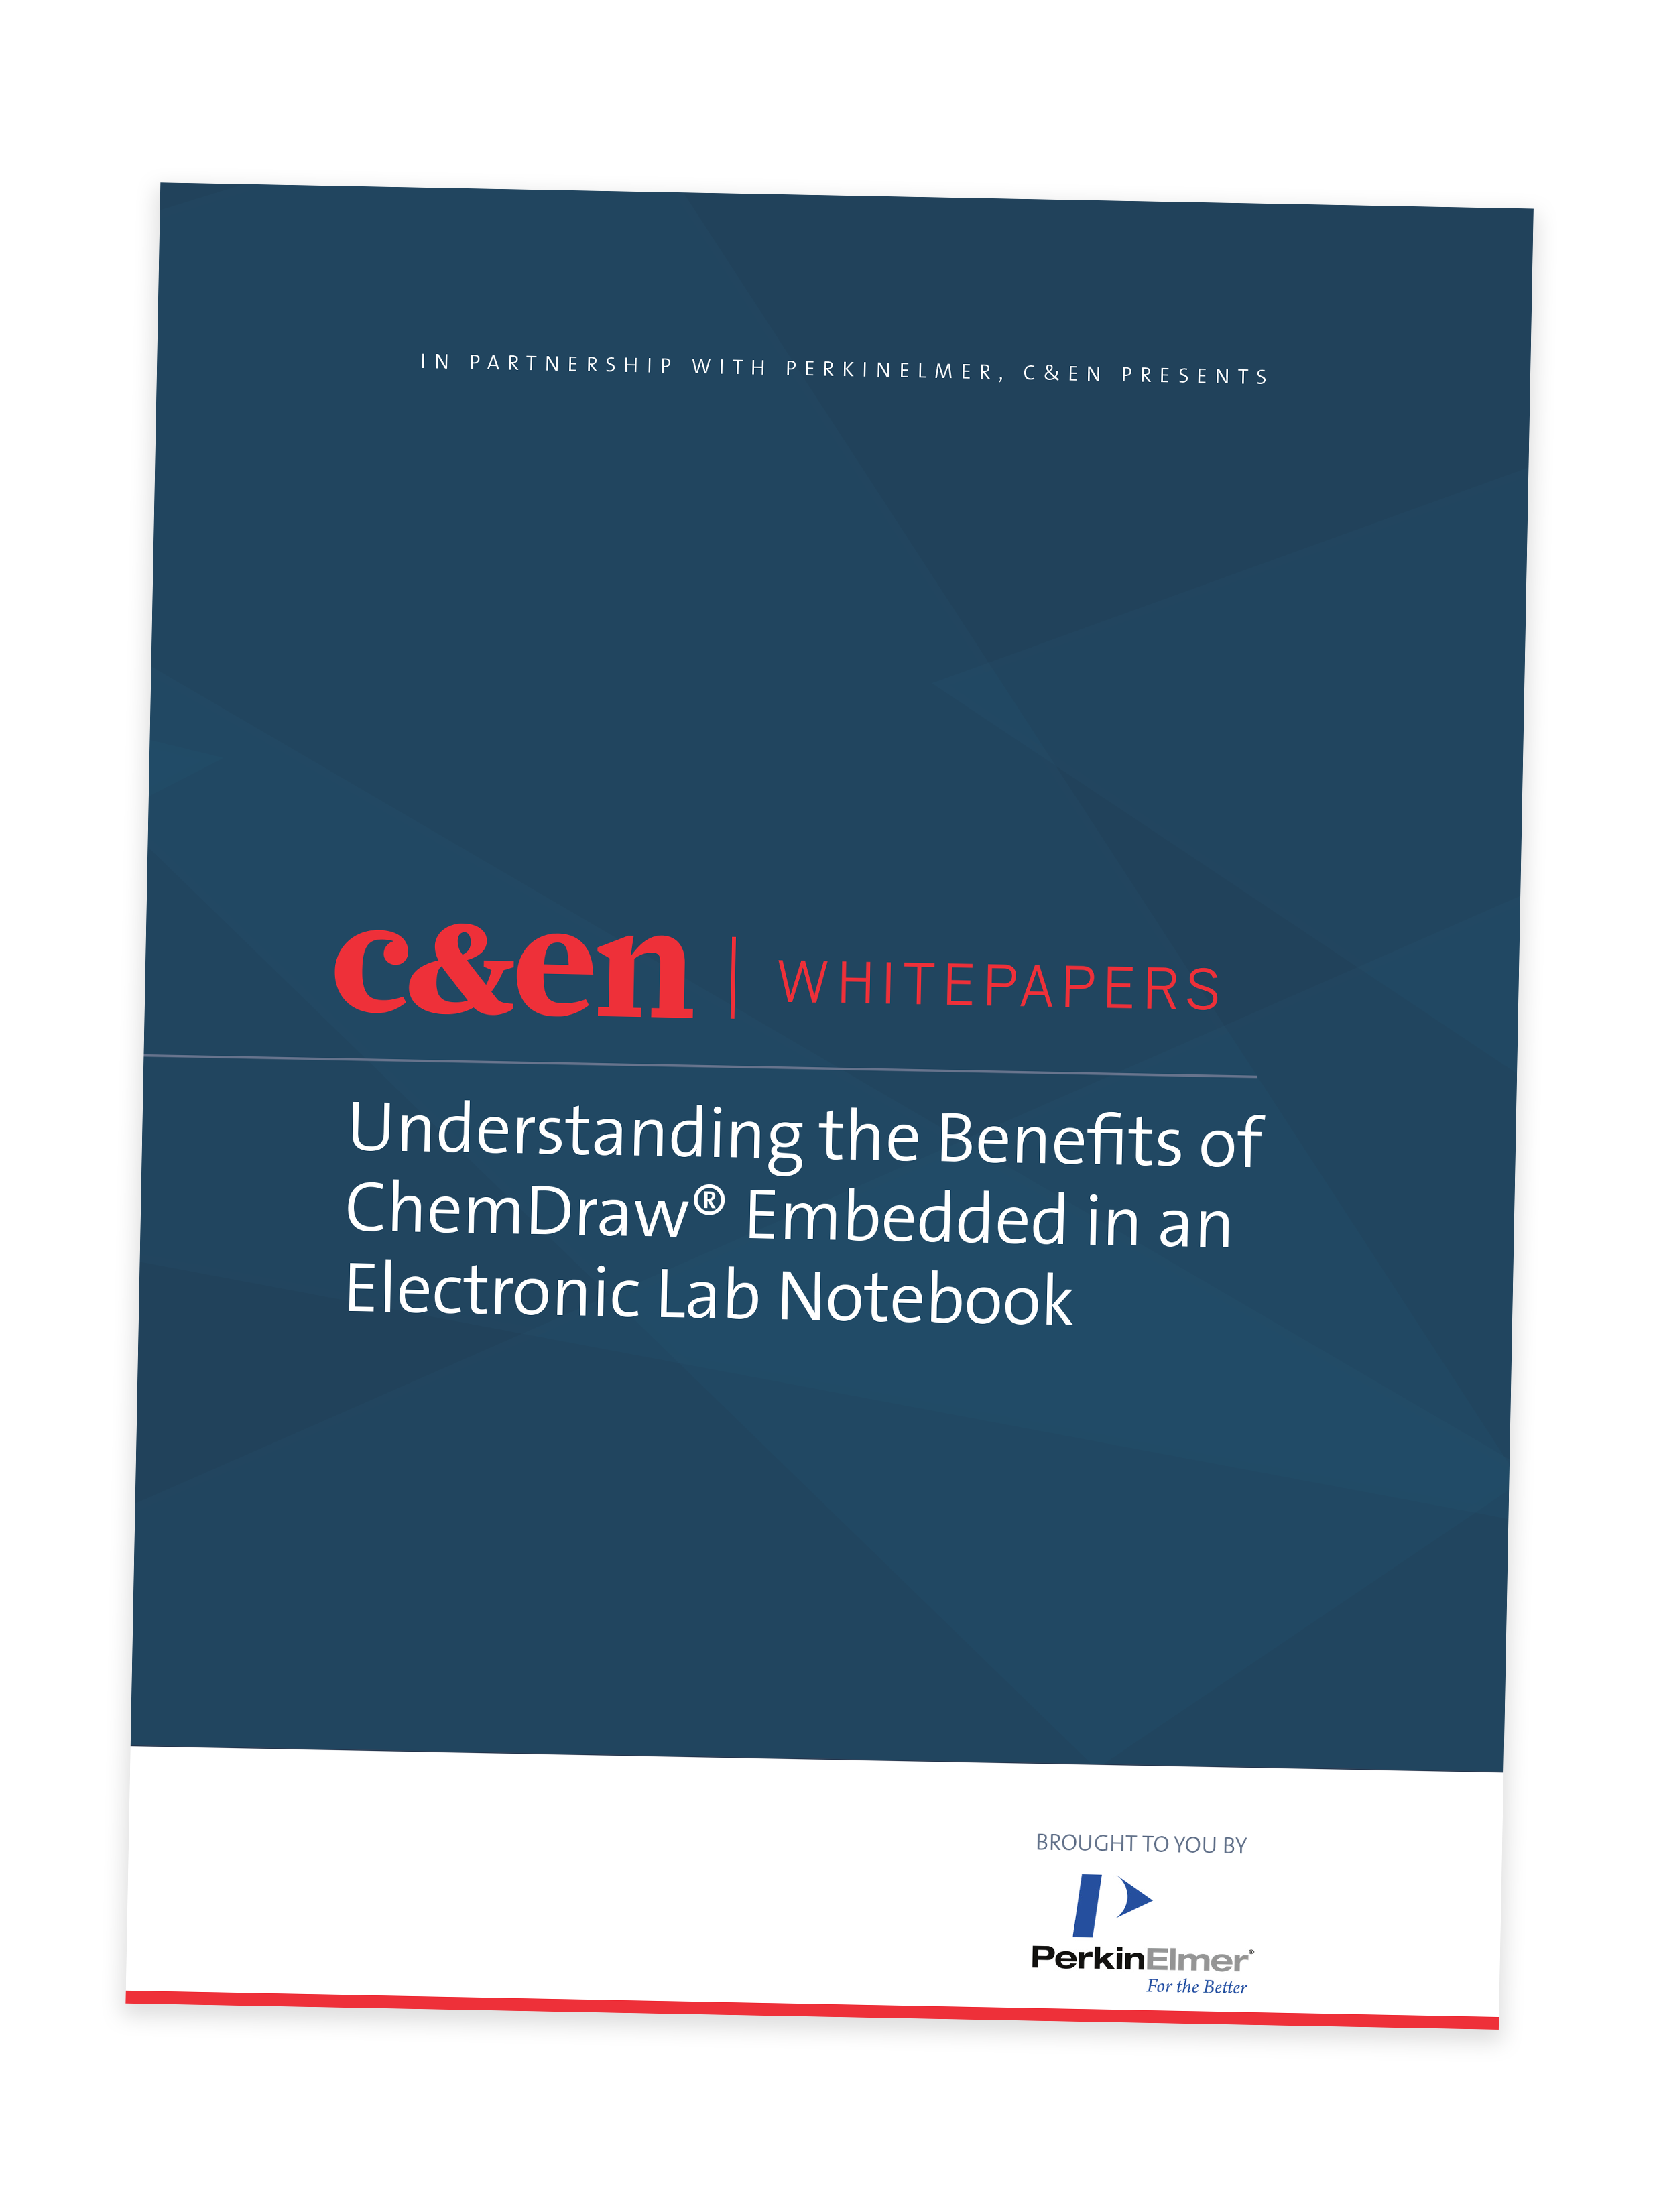 Understanding the Benefits of ChemDraw® Embedded in an Electronic Lab Notebook